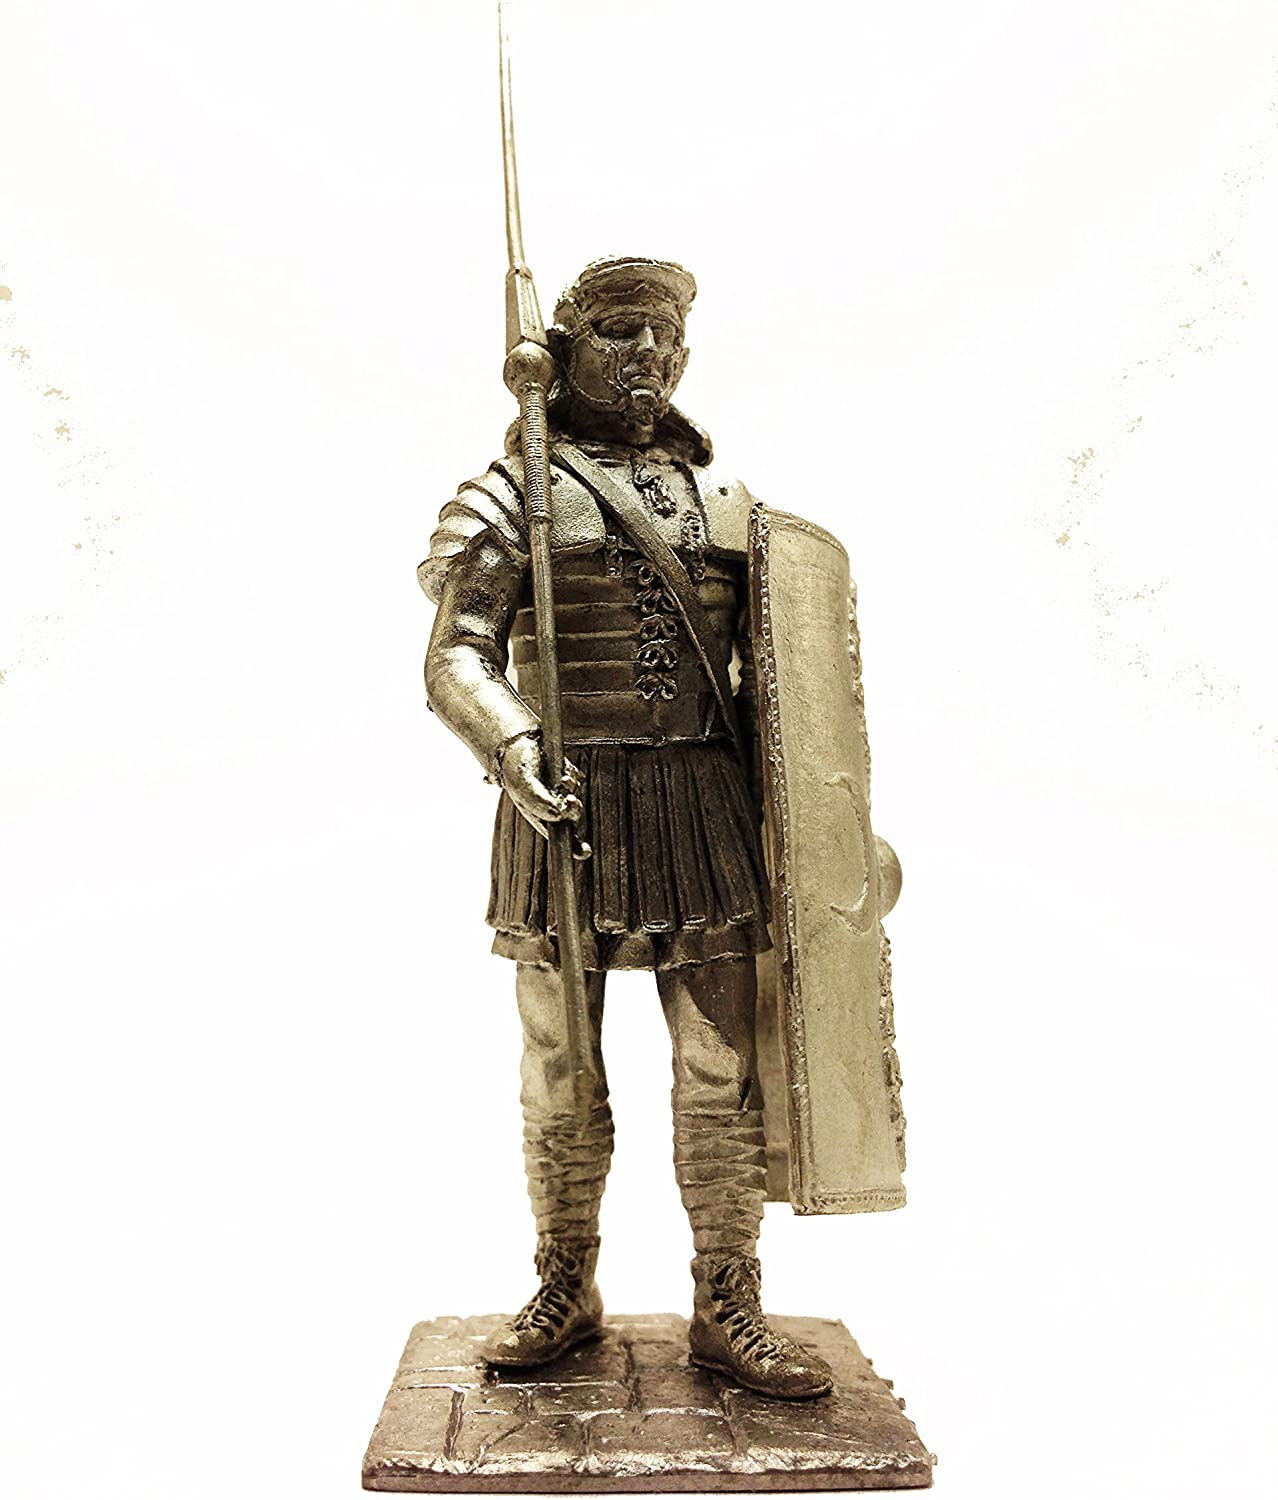 Military-Historical Miniatures Roman. Legionnaire on Parade 200 AD Tin Metal 54mm Action Figures Toy Soldiers Size 1 32 Scale for Home Décor Accents Collectible Figurines Item  C5162